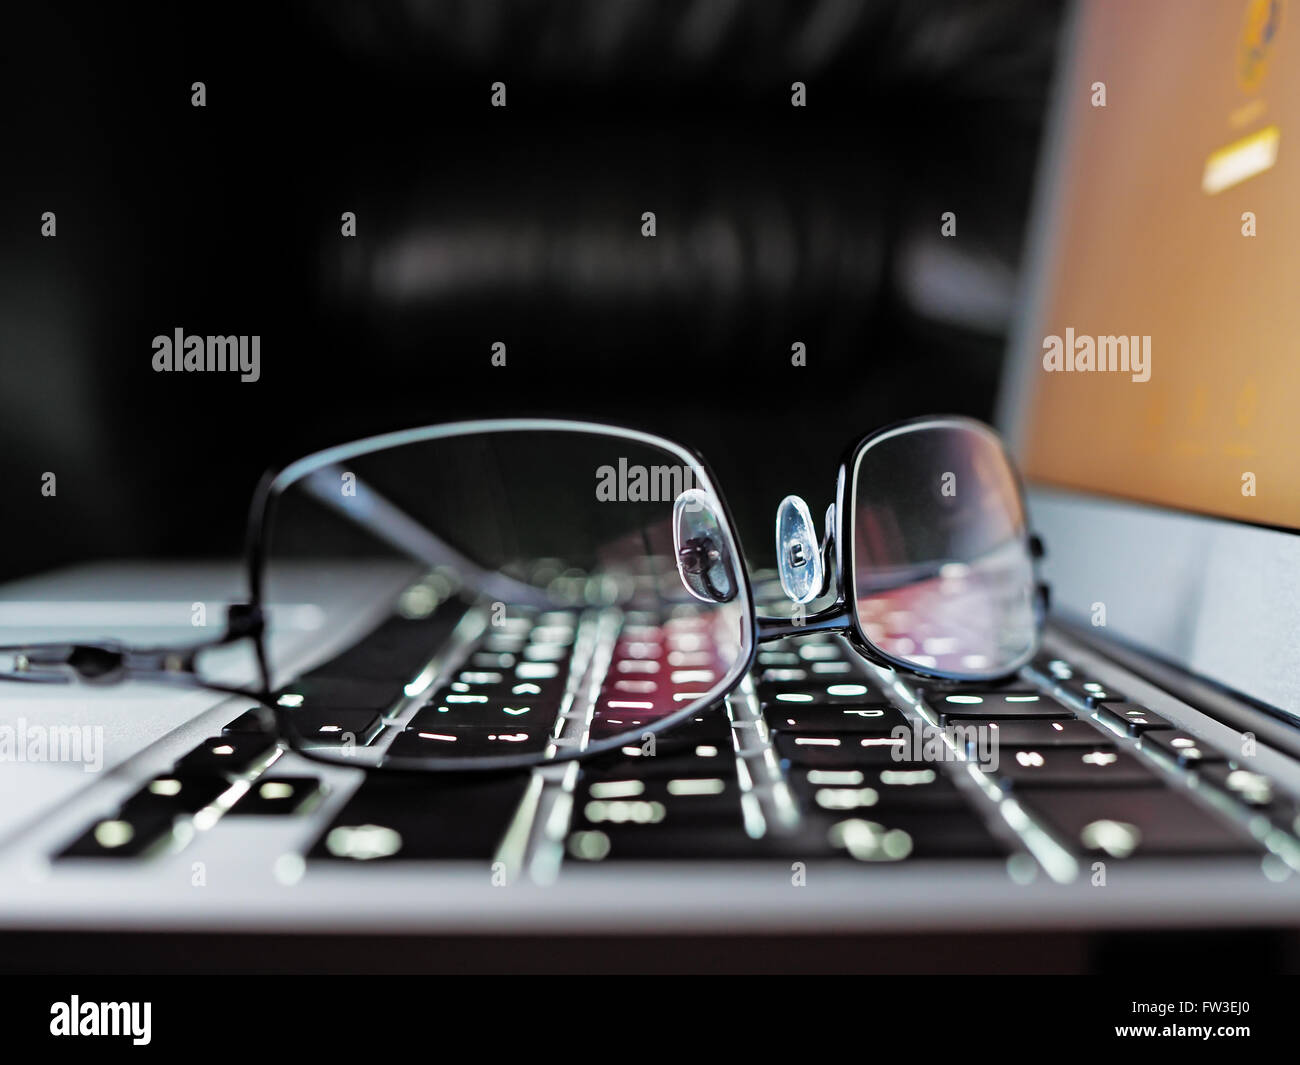 Reading eyeglasses on an elegance laptop keyboard, shallow depth of field - Stock Image